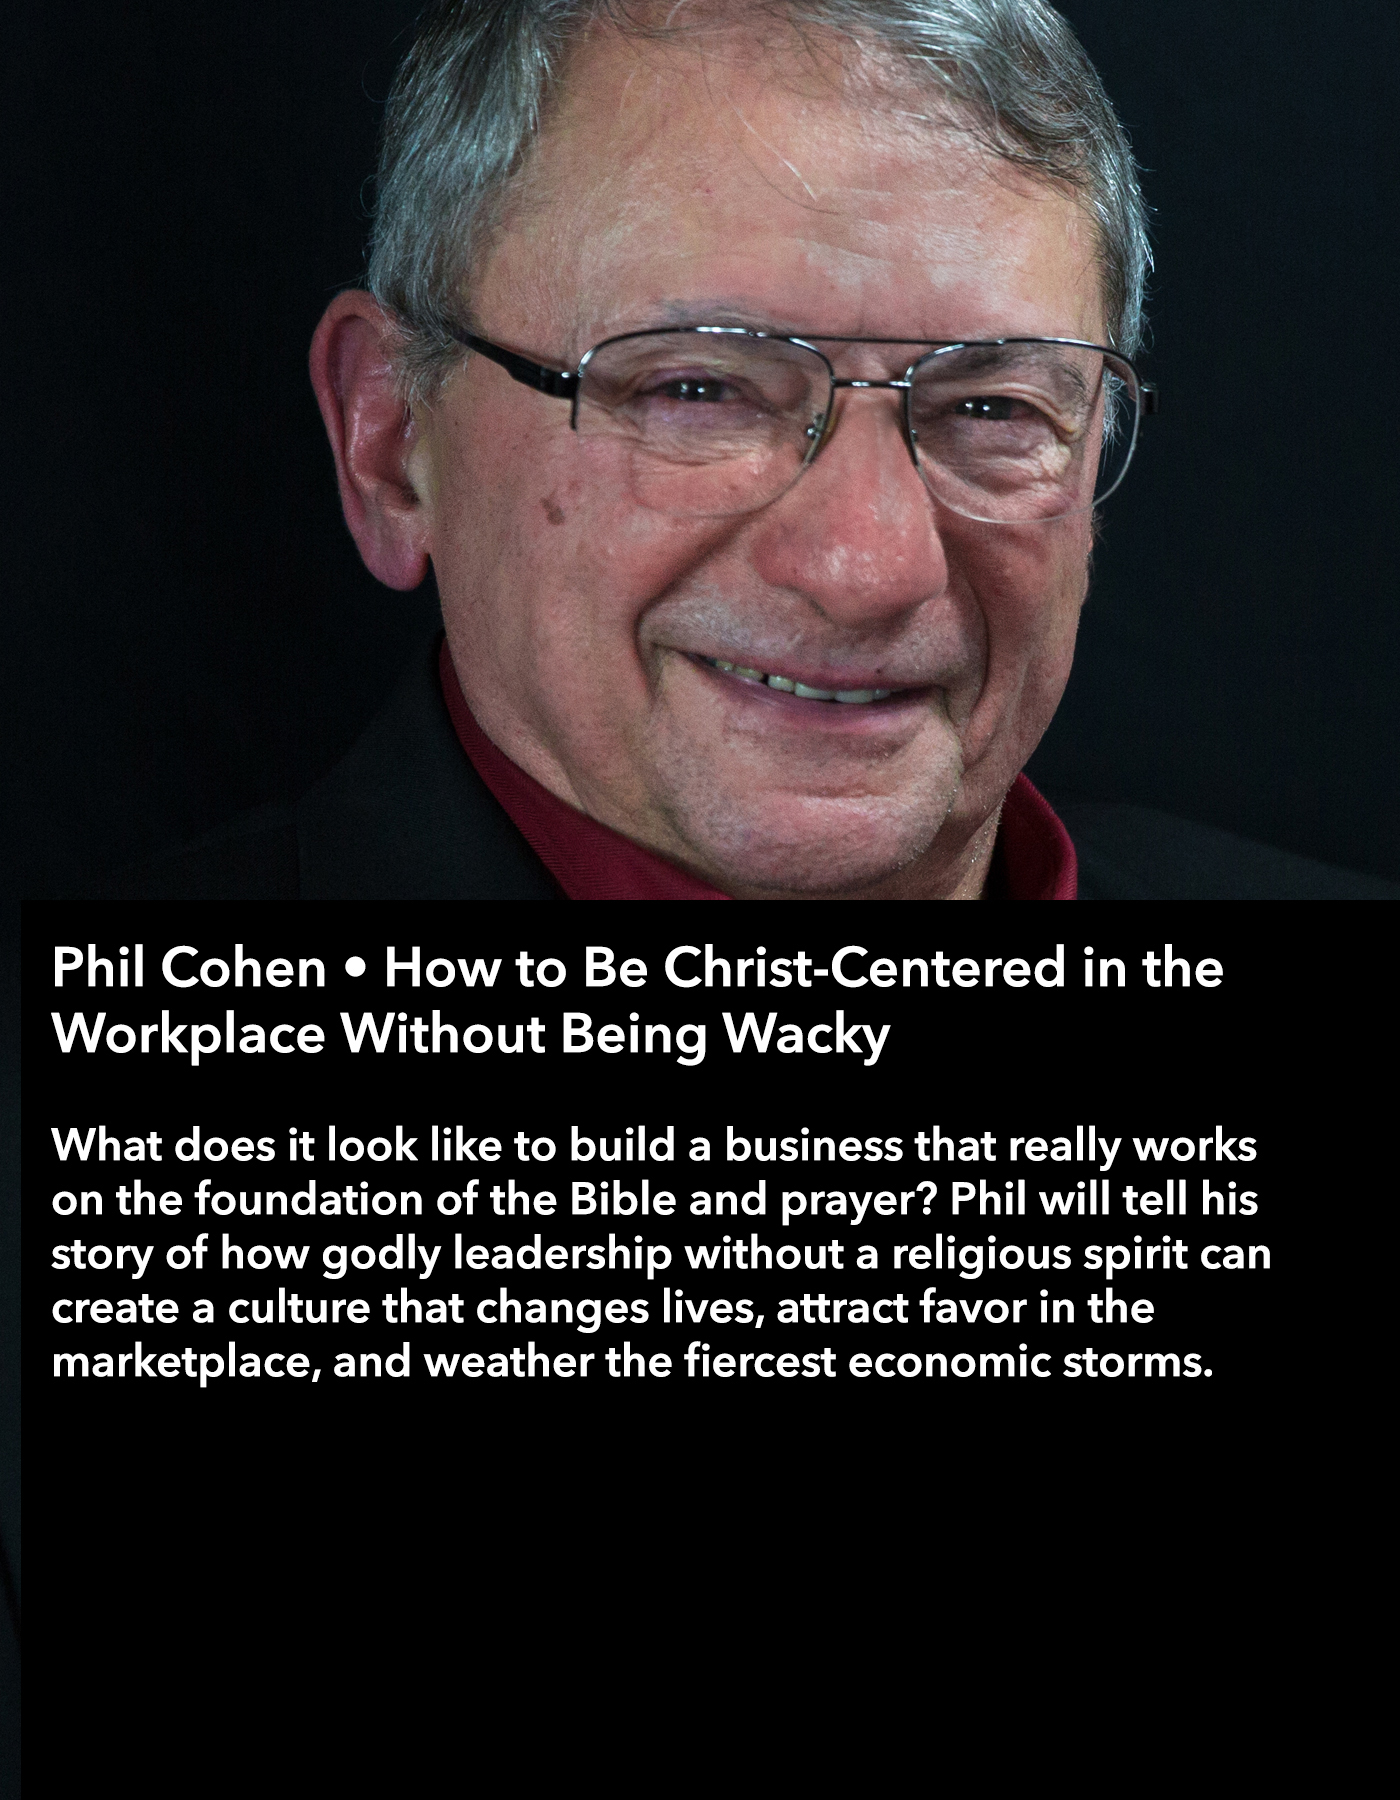 Phil Cohen • How to Be Christ-Centered in the Workplace Without Being Wacky • Friday Night, March 17 • 8:30 – 9:45 pm